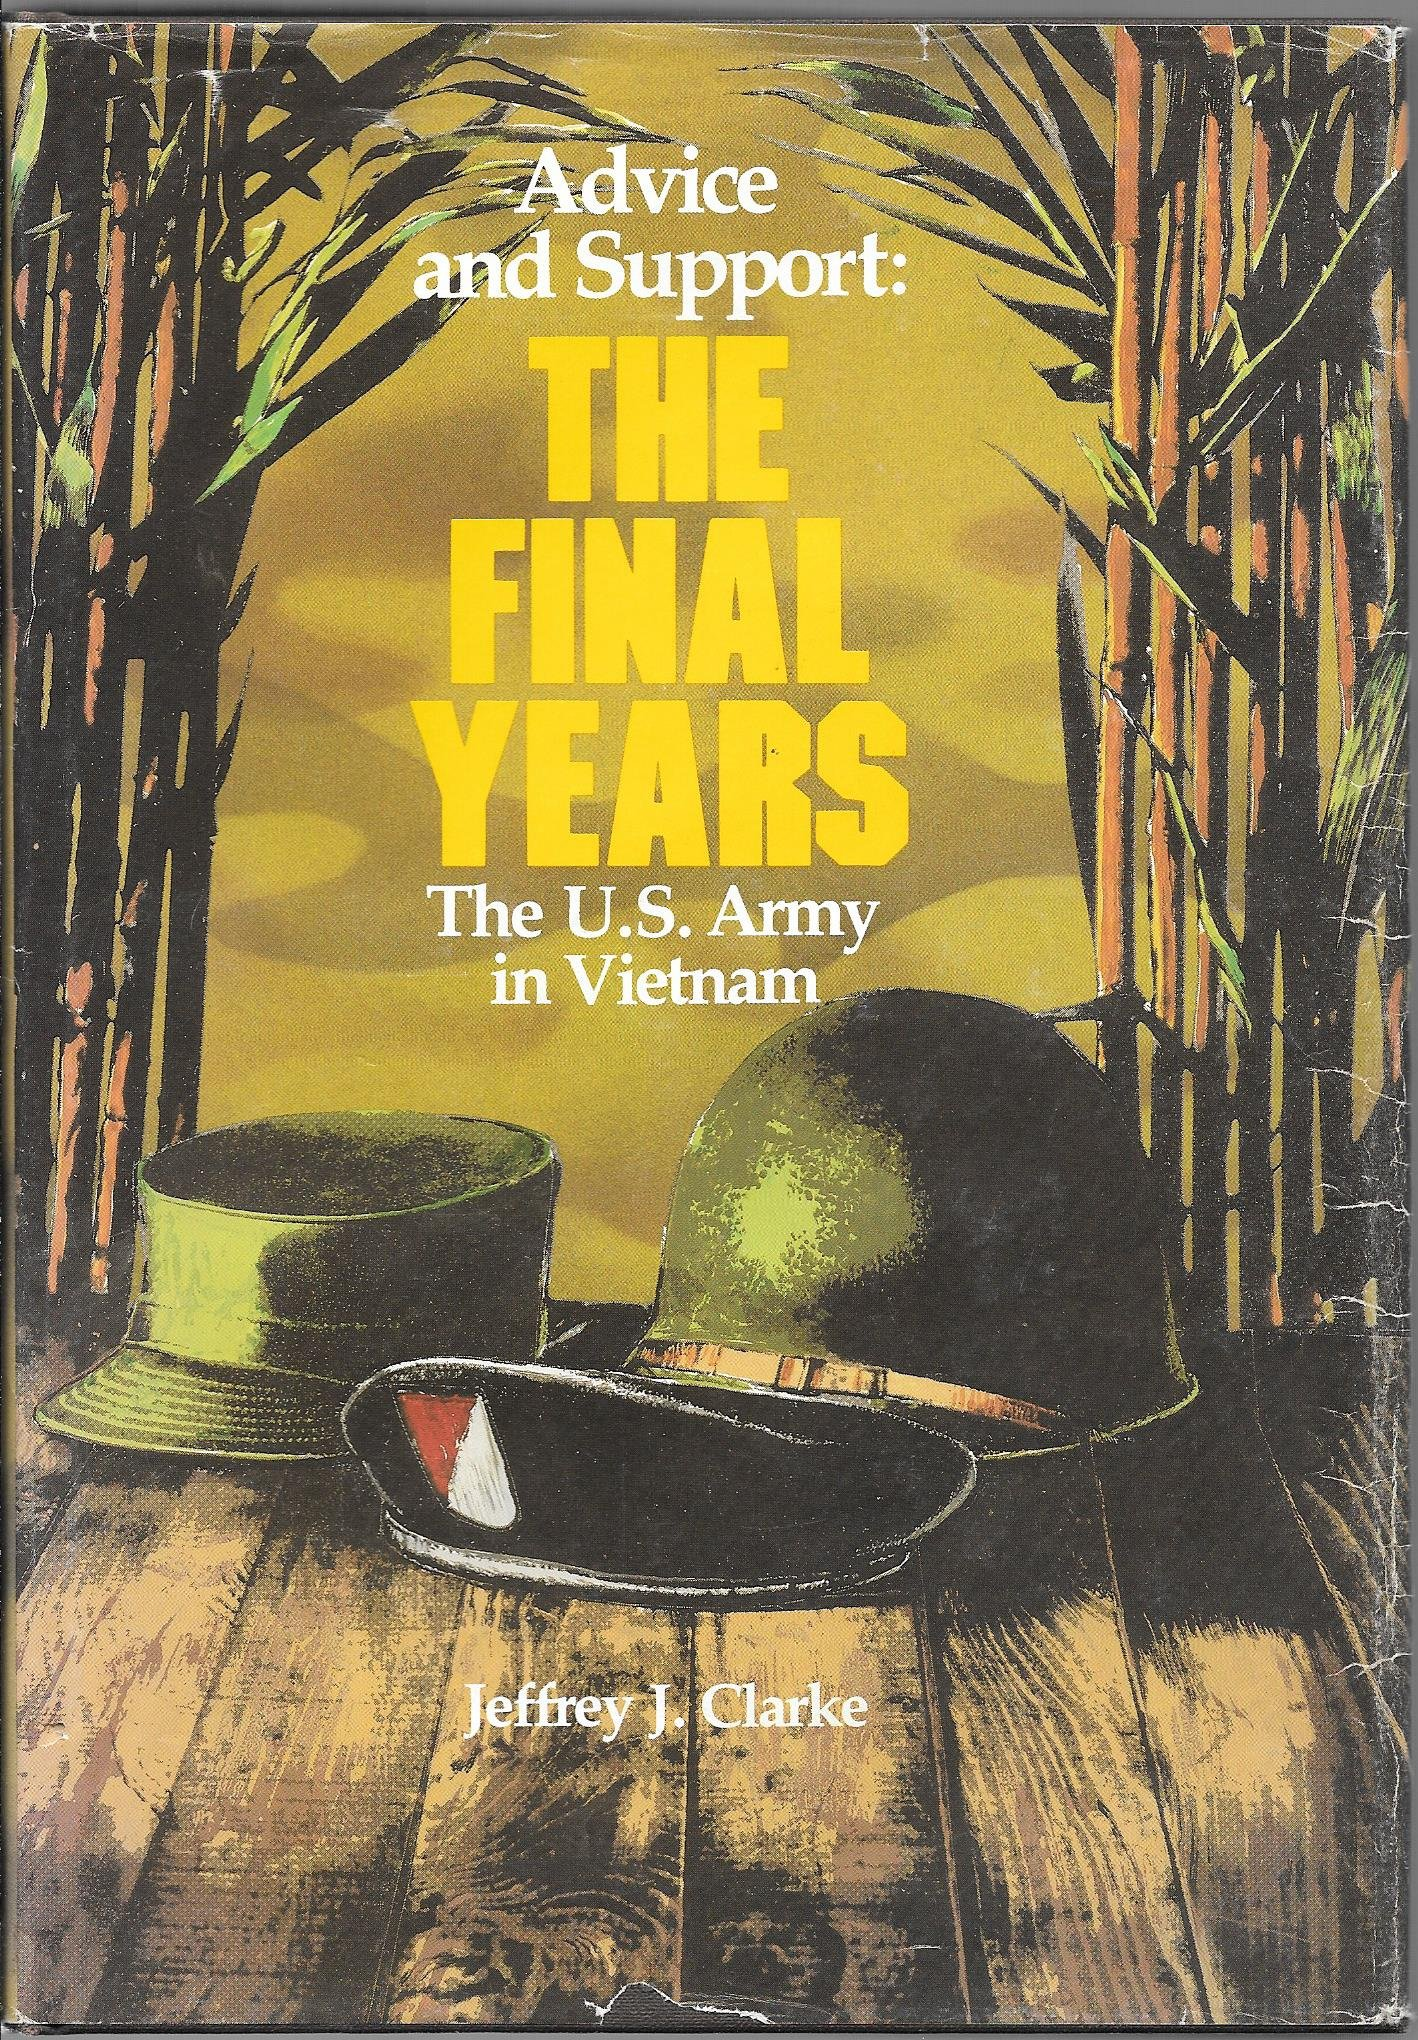 Advice and Support: The Final Years, 1965-1973 (United States Army in Vietnam), Jeffrey J. Clarke